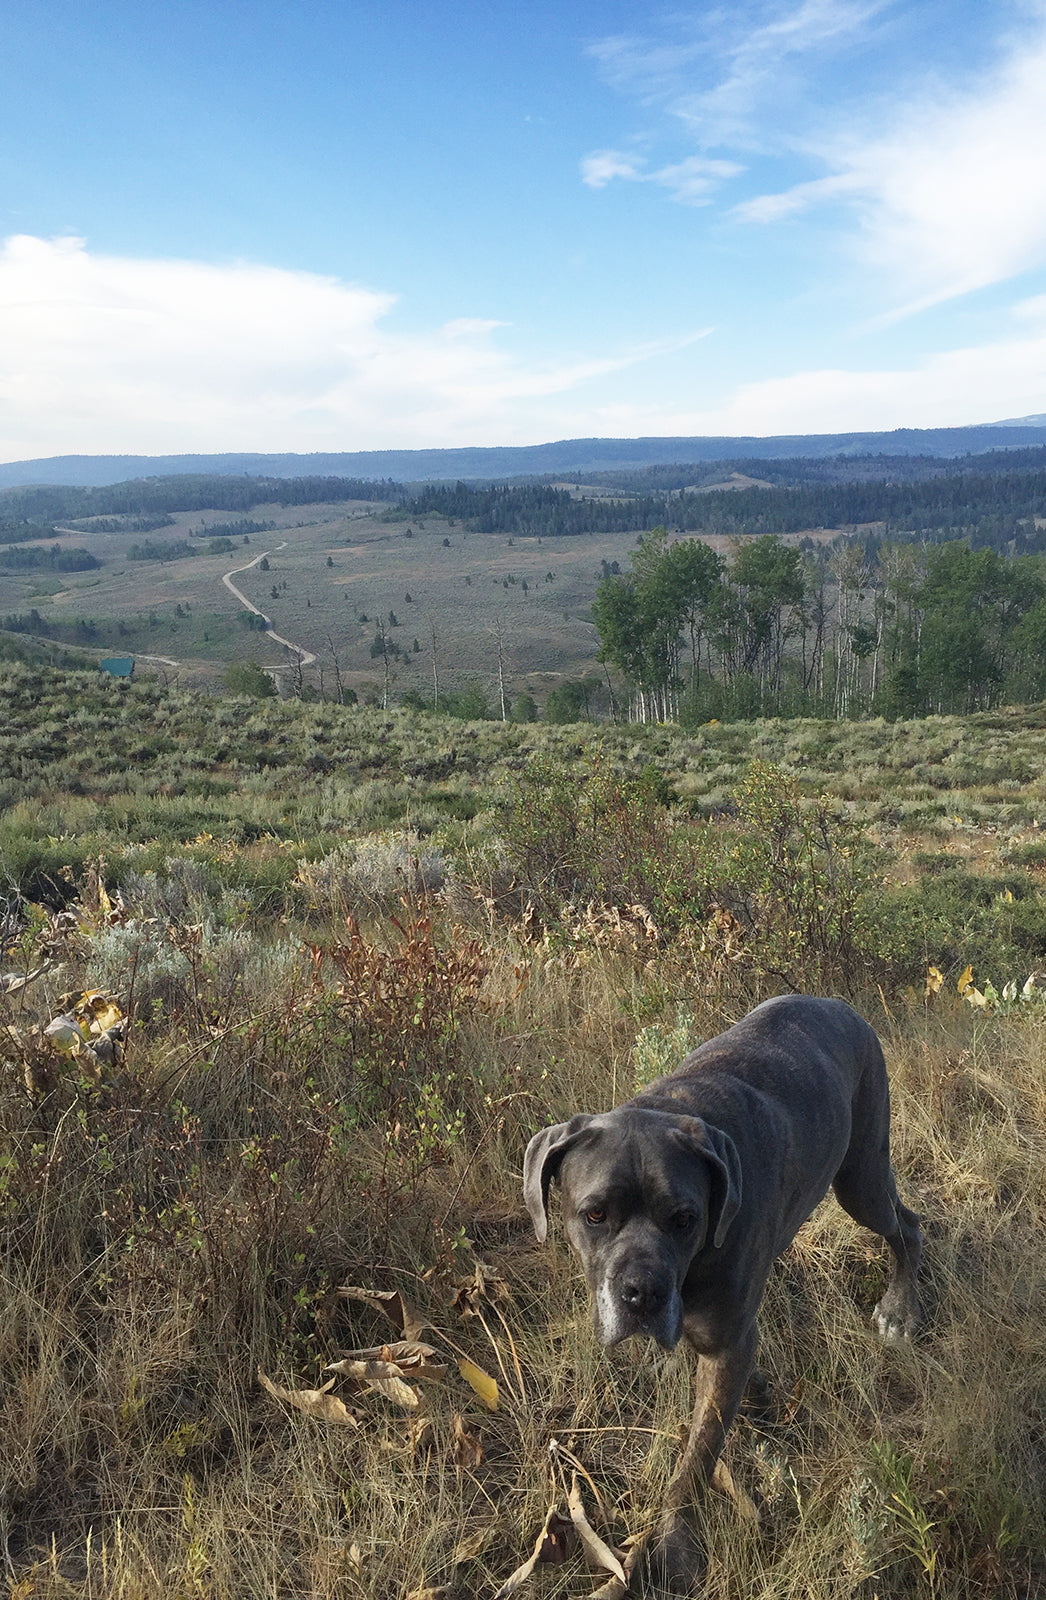 Coral & Tusk Wyoming - Paco the Mastiff